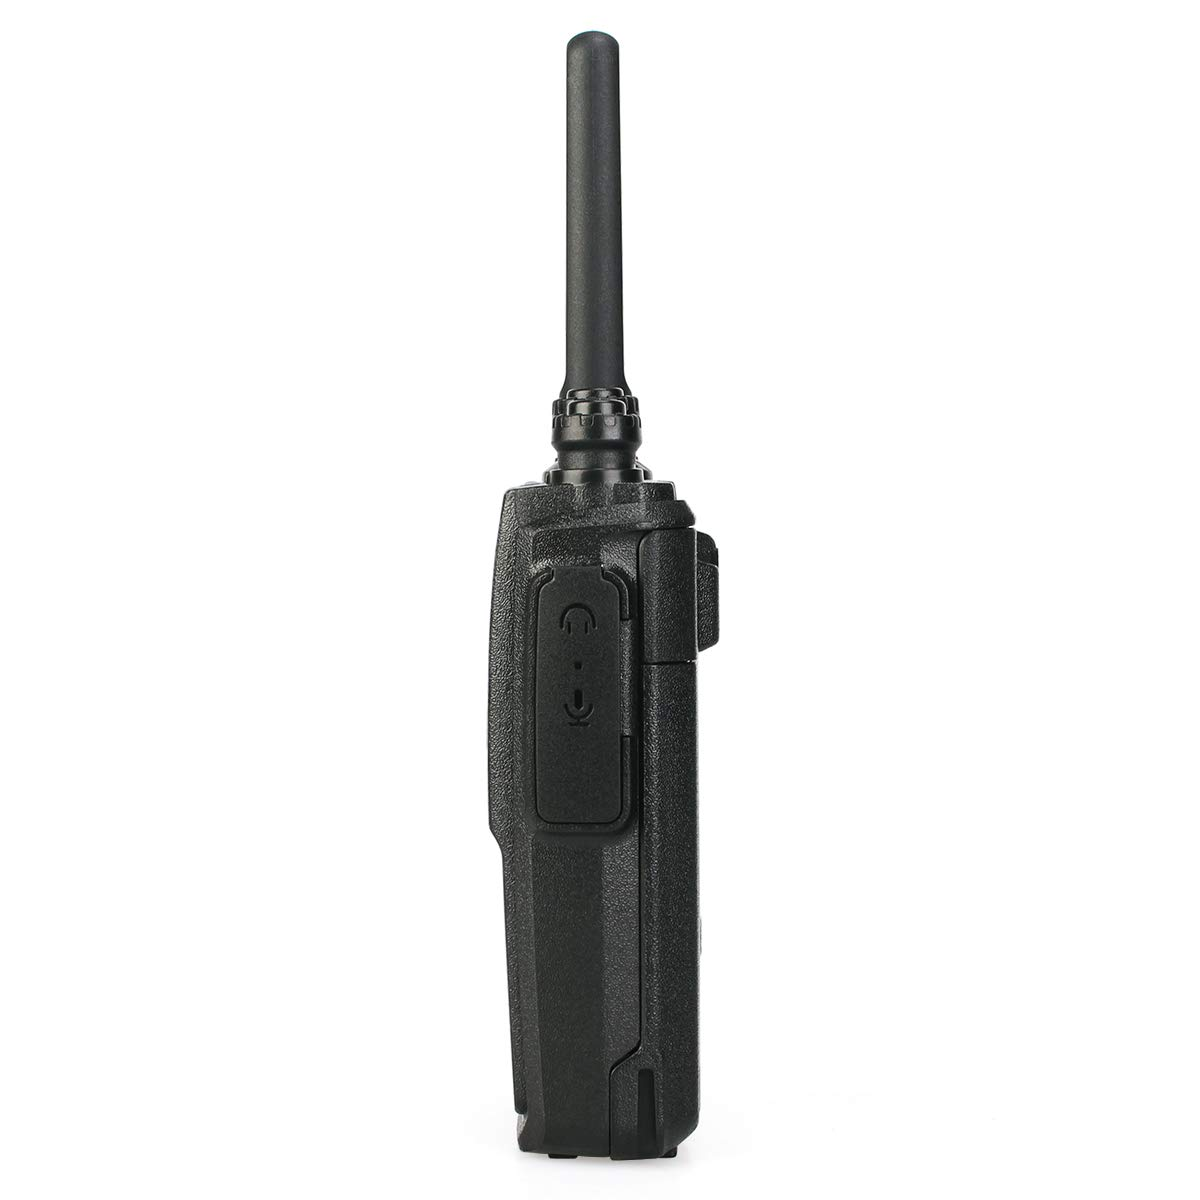 FA9139AX10-C9018A 20 Pack Retevis RT28 2 Way Radios Long Range Rechargeable 16 Channels FRS Emergency/Alarm Security Business Walkie Talkies with USB Wall Charger